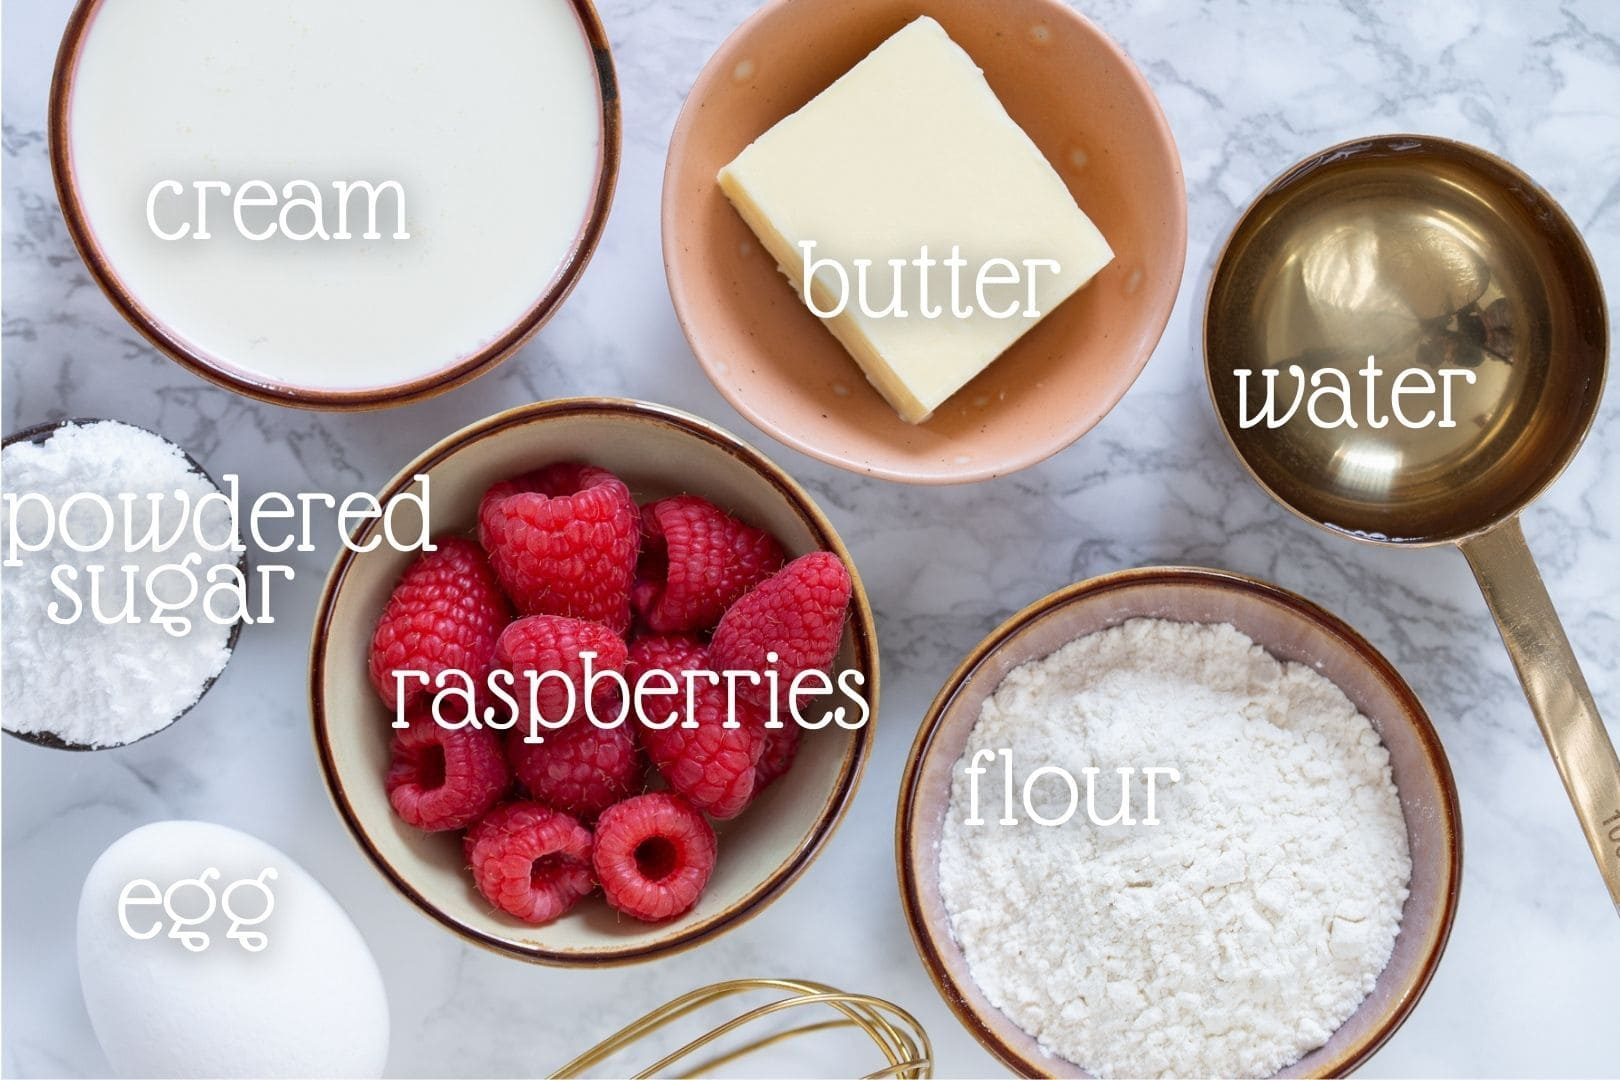 Overhead view of the ingredients needed in this recipe.